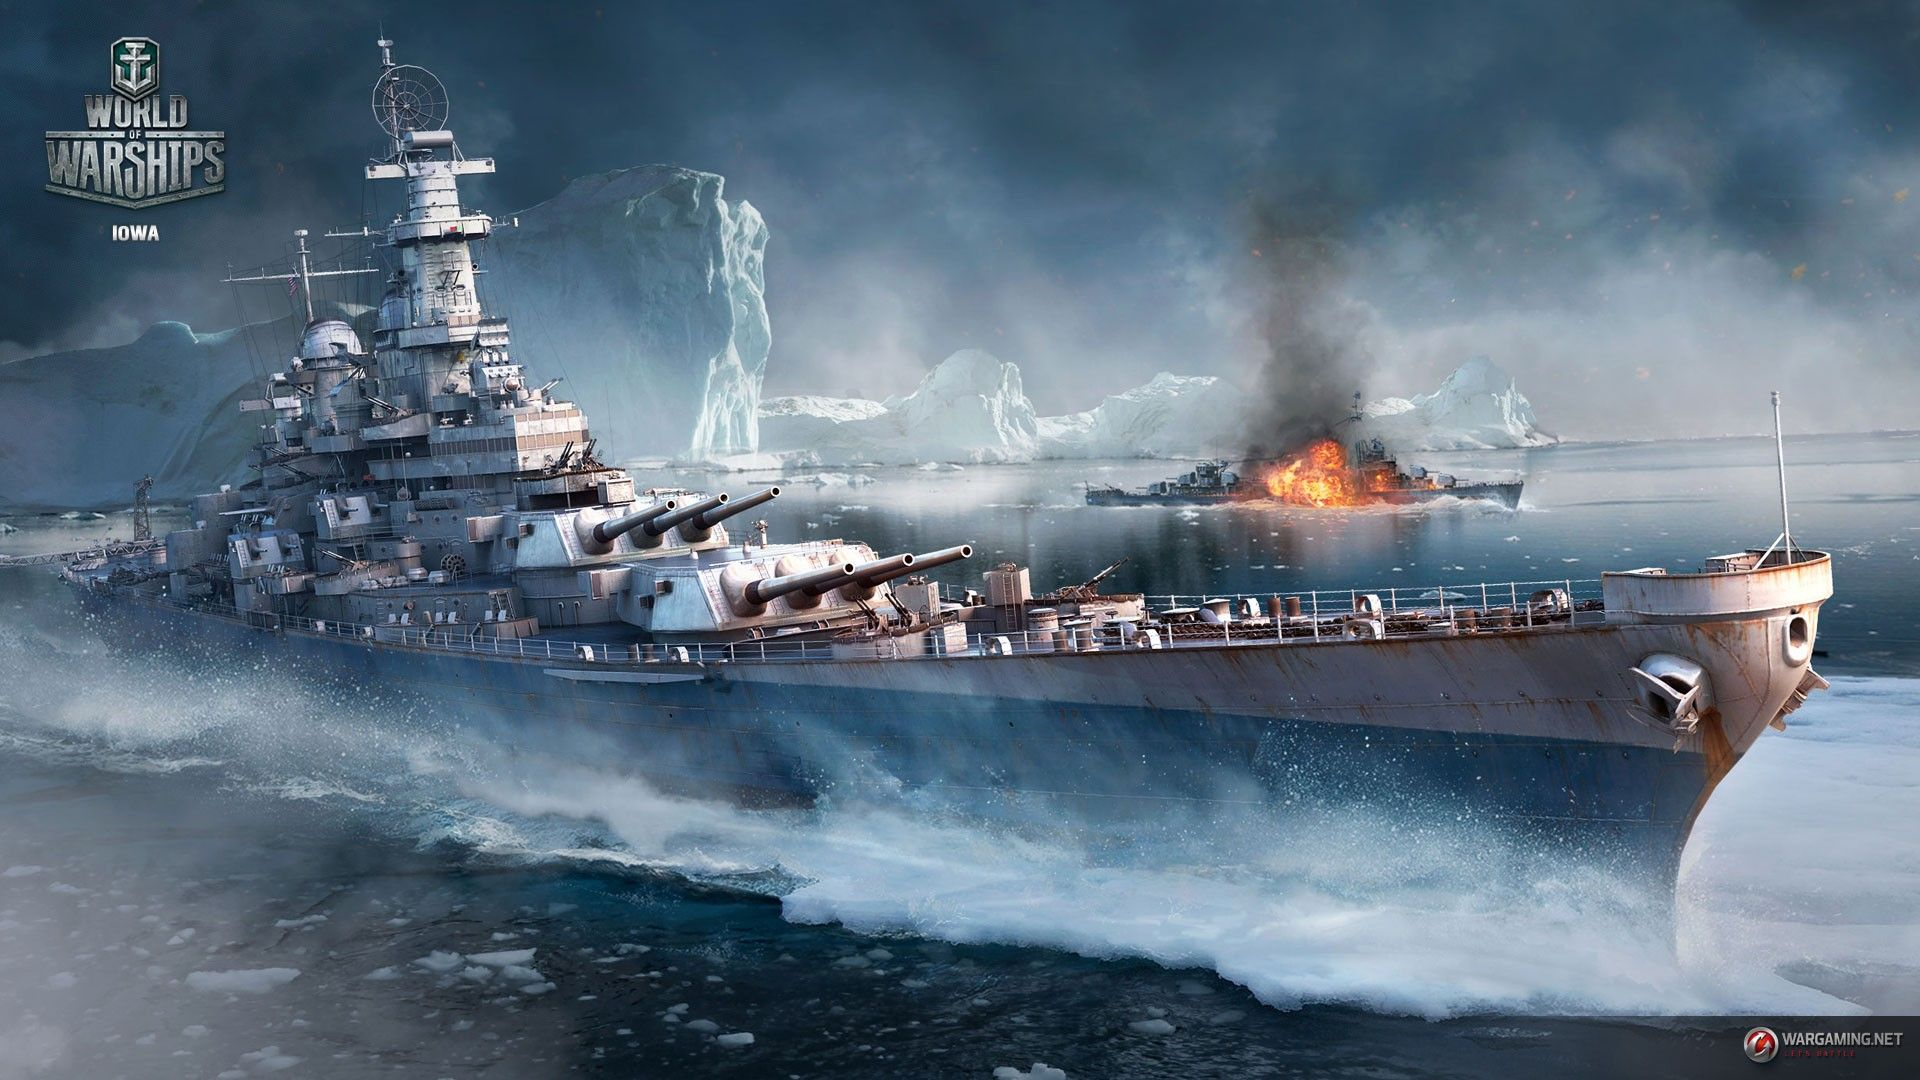 Uss Iowa World Of Warships World War Ii Battleships Iceberg